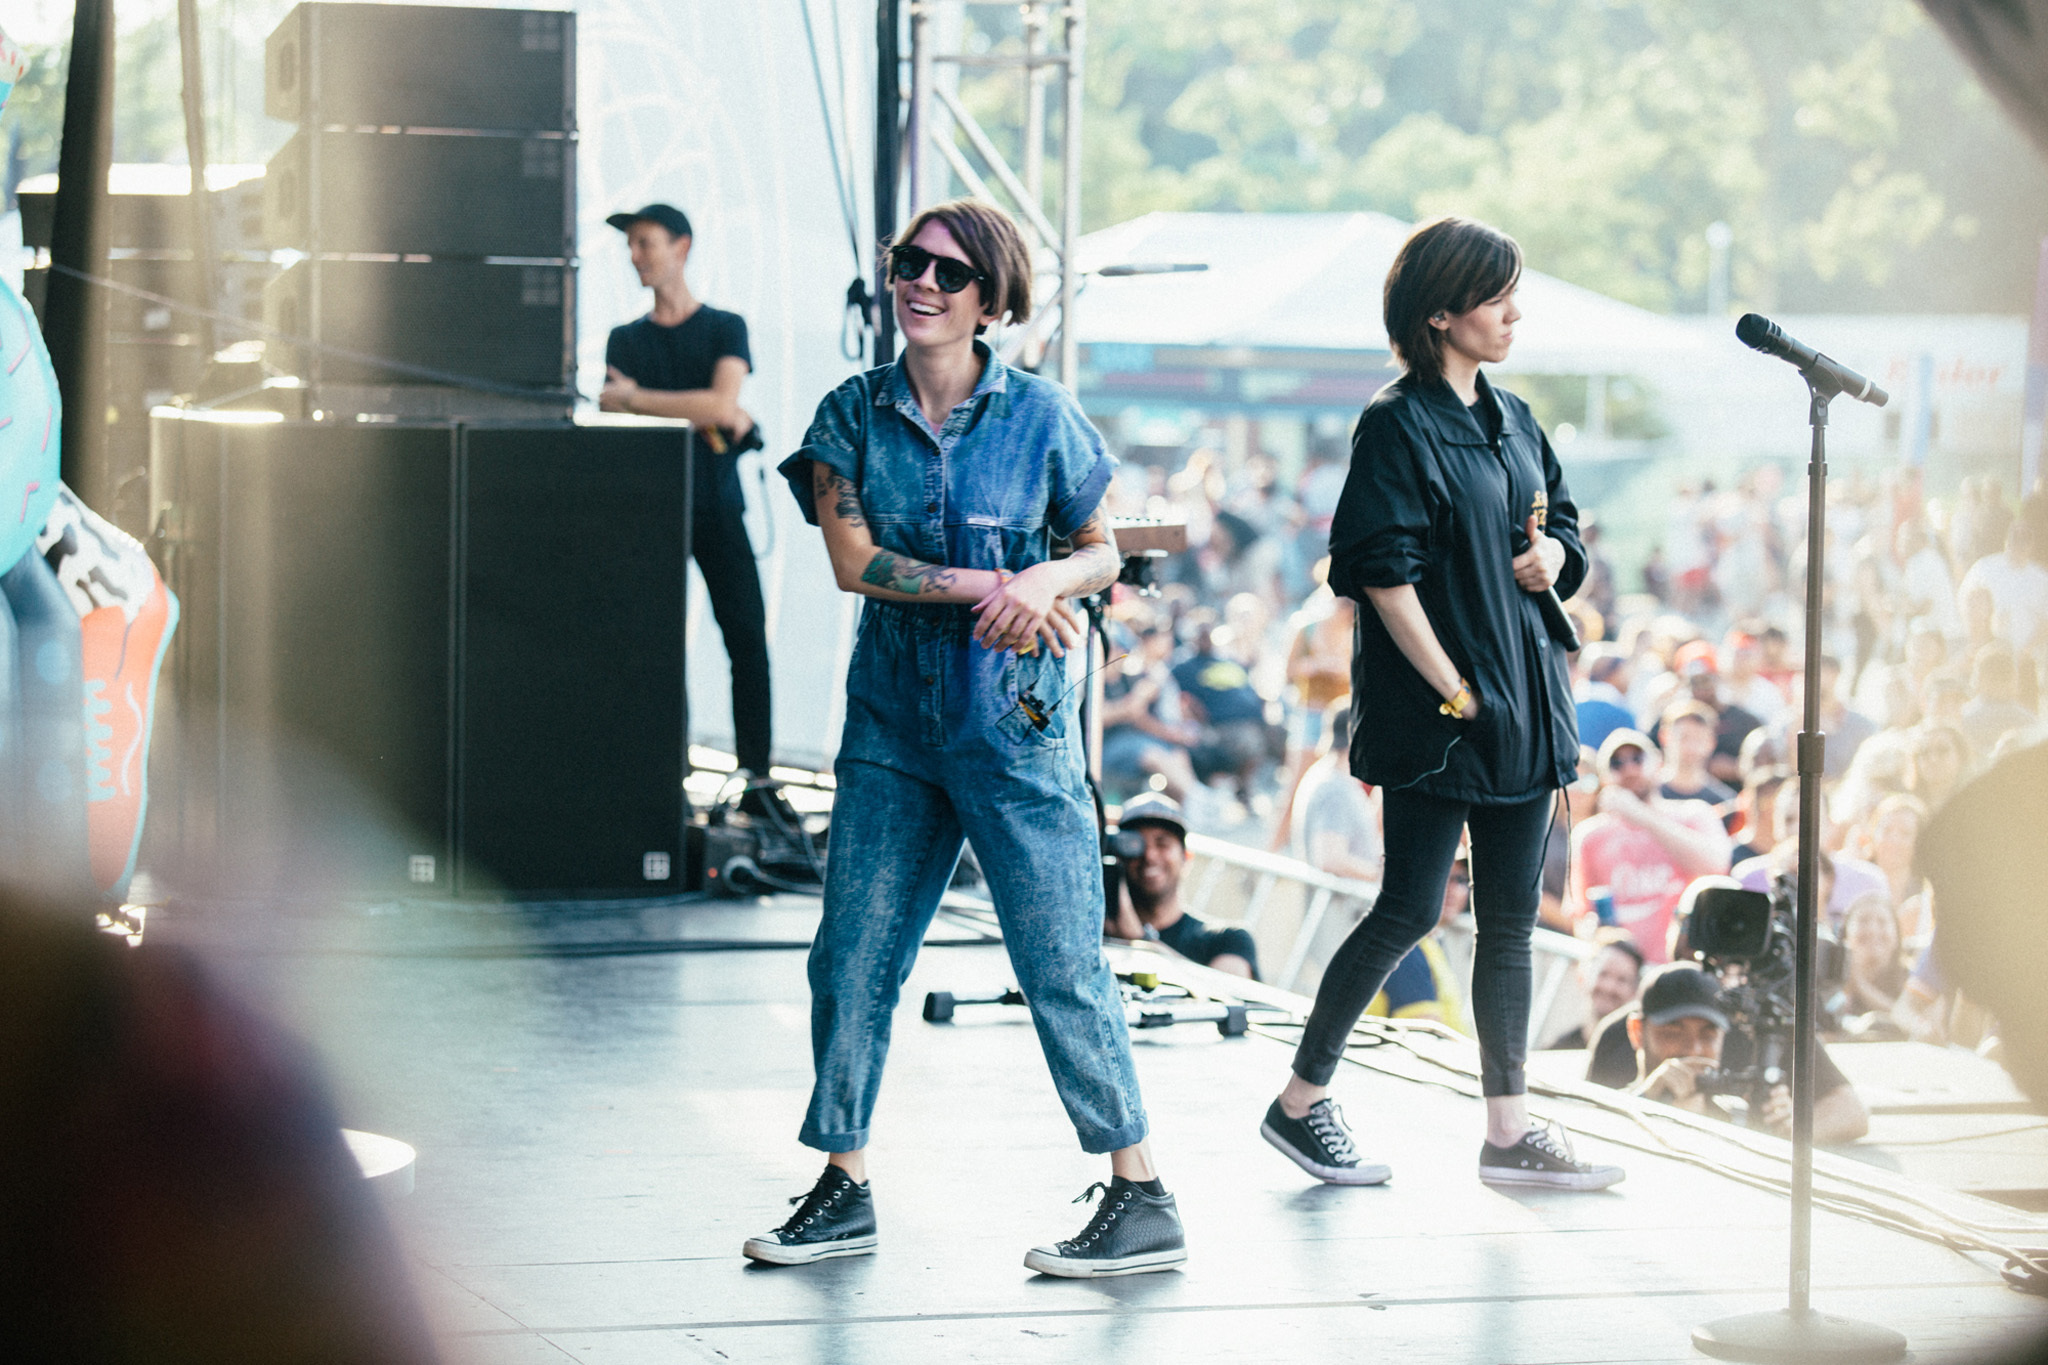 The five best things we saw on Friday at Meadows Festival 2017